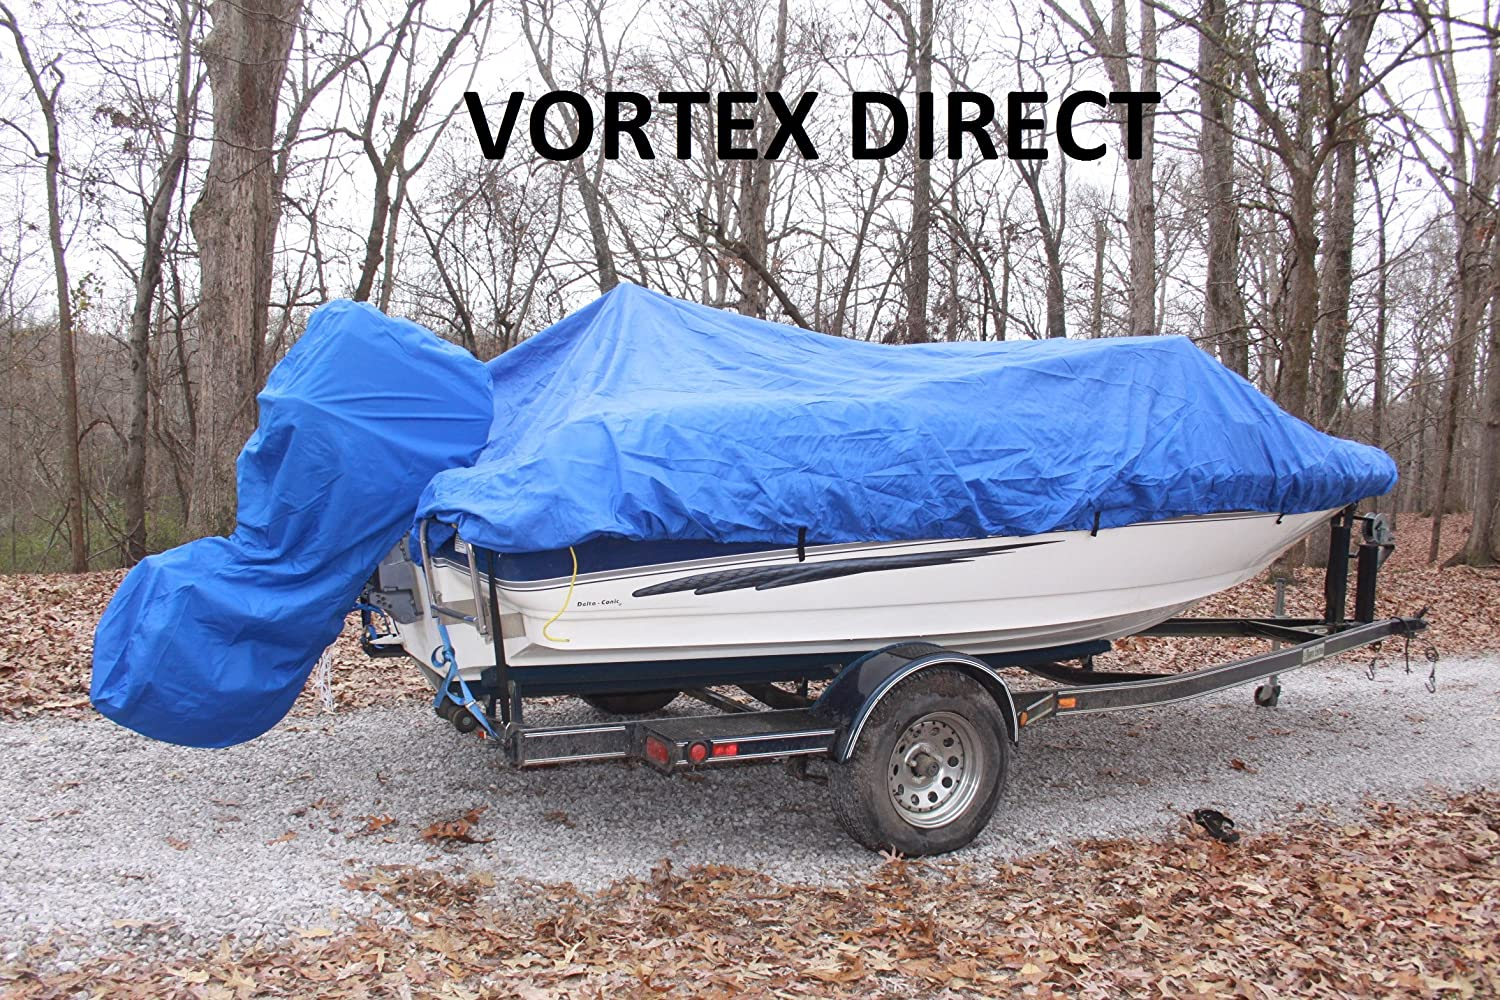 VORTEX blueeE 600D MARINE GRADE OUTBOARD MOTOR COVER 40HP50HP 70.5  x 56.3  (CIRCUMFERENCE x HEIGHT) (FAST SHIPPING  1 TO 4 BUSINESS DAY DELIVERY)